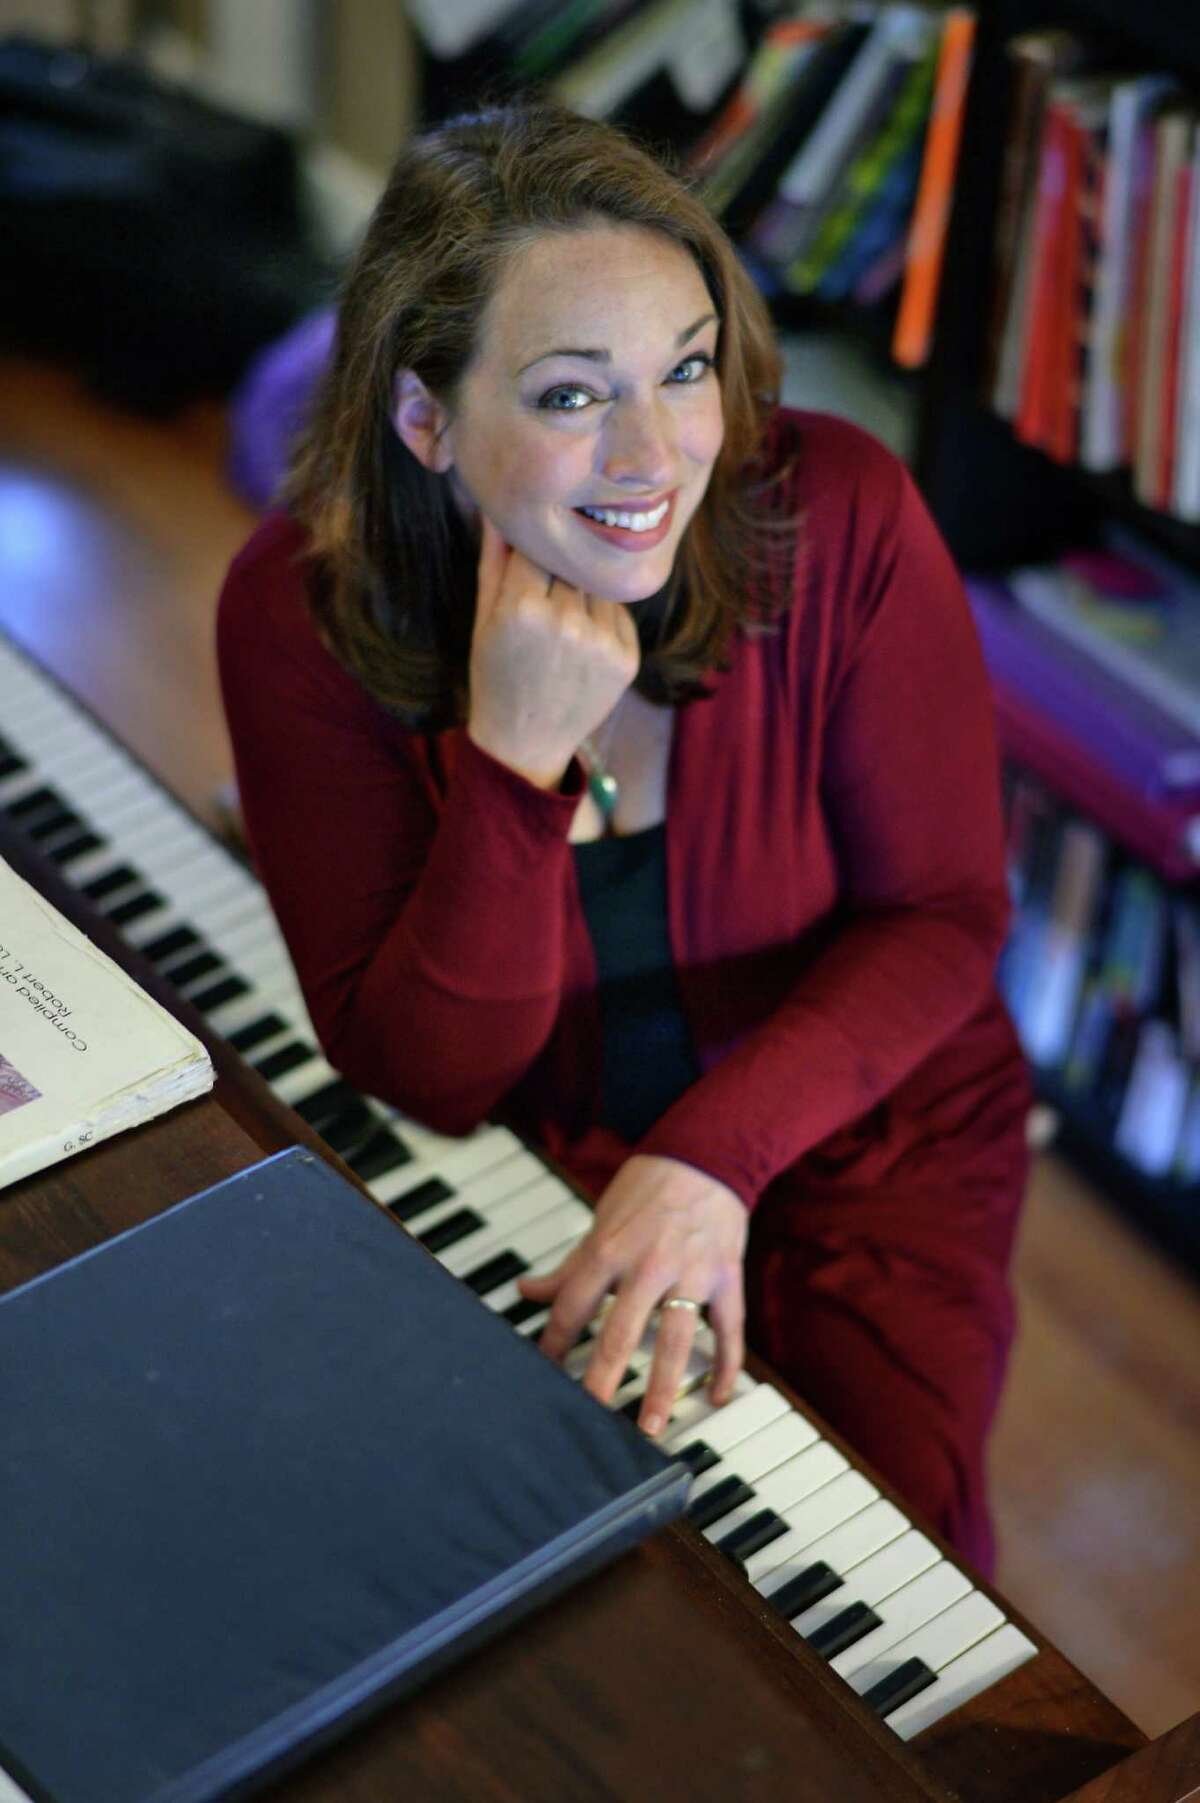 Soprano Carla Fisk in the teaching and studio space at her home on Tuesday, May 24, 2016, in Albany, NY. (John Carl D'Annibale / Times Union)